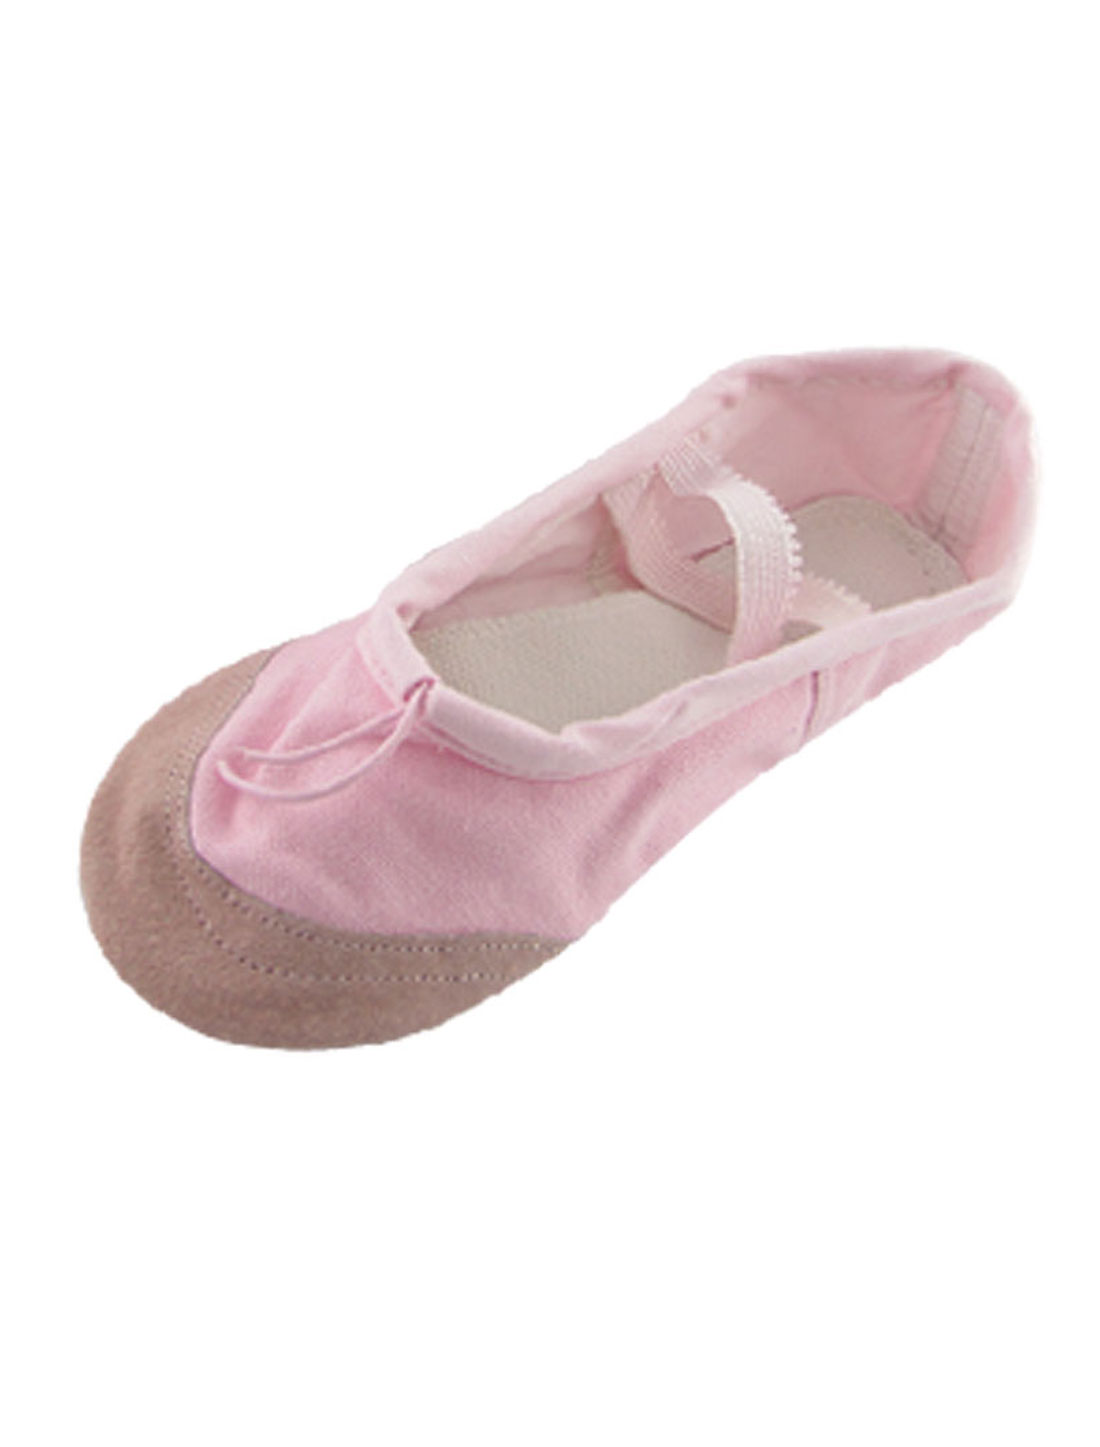 Girls Pink Dancing Ballet Crossover Elastic Bands Flat Dance Shoes US Size 1.5